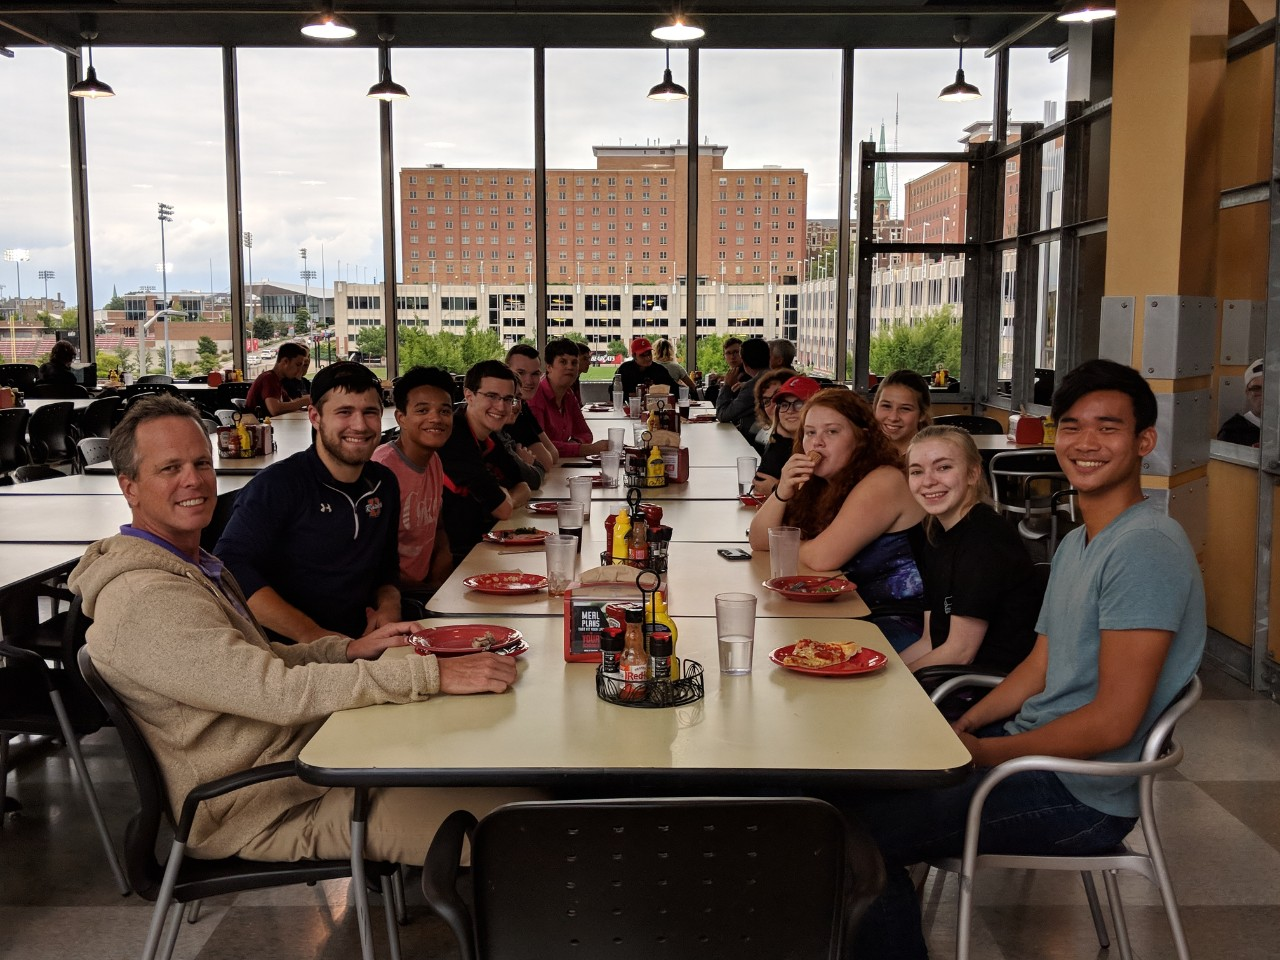 about 15 students and faculty members sit around a table eating pizza.